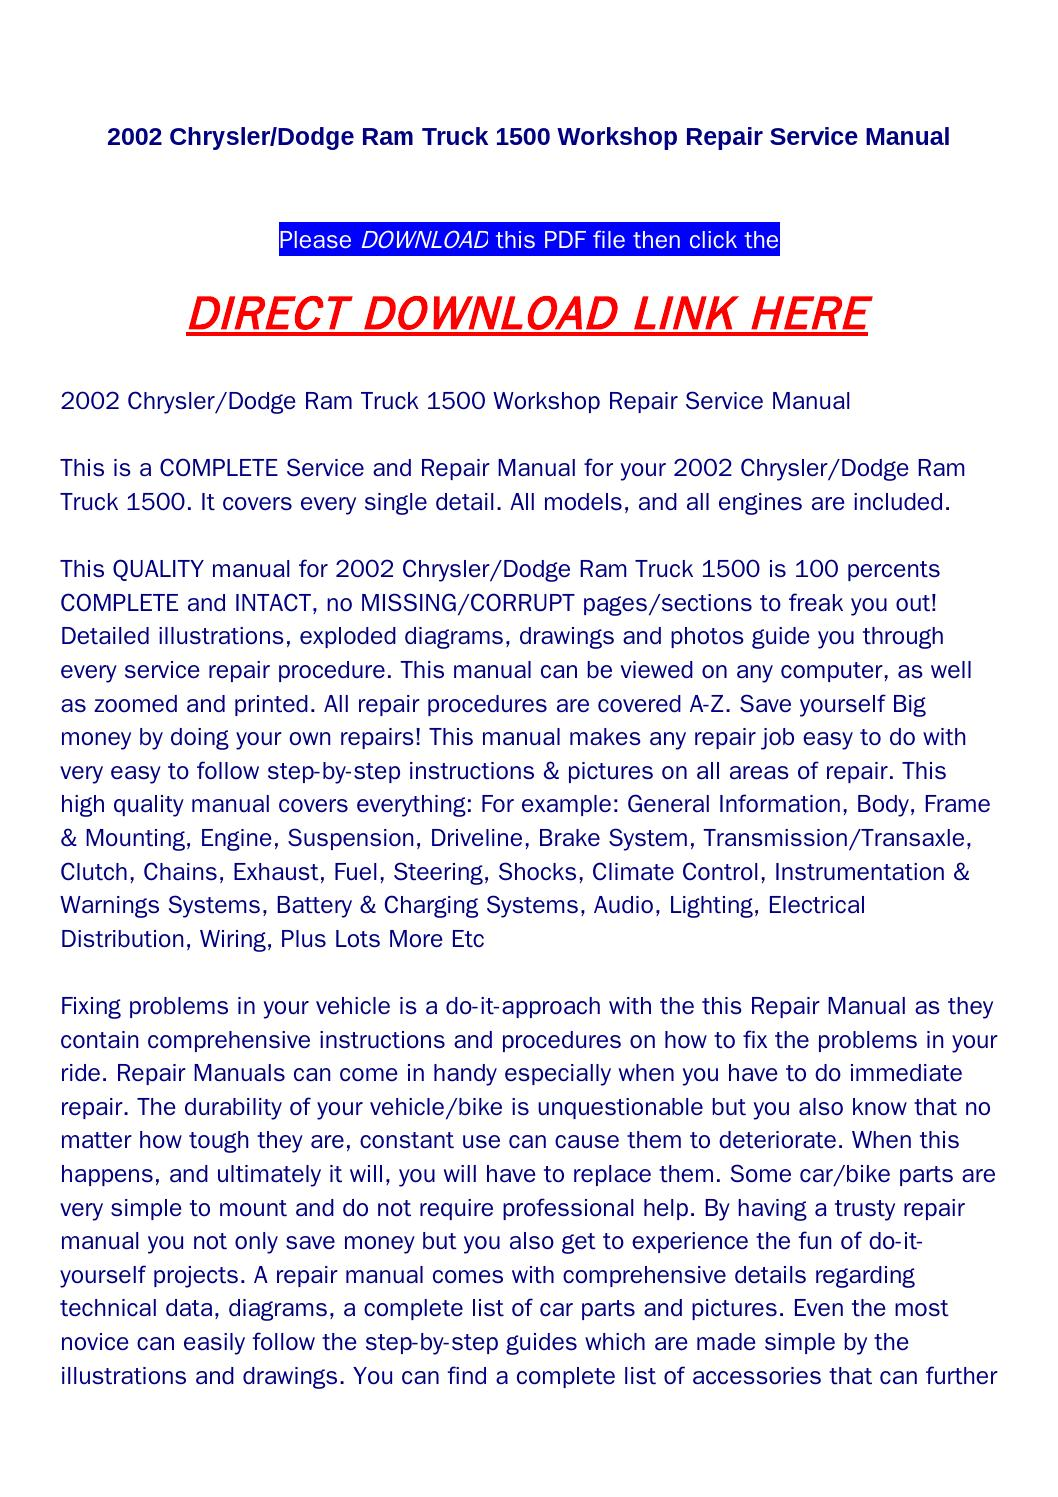 2002 Chrysler Dodge Ram Truck 1500 Workshop Repair Service Manual By Diagrams Rock Pagelargecom Issuu